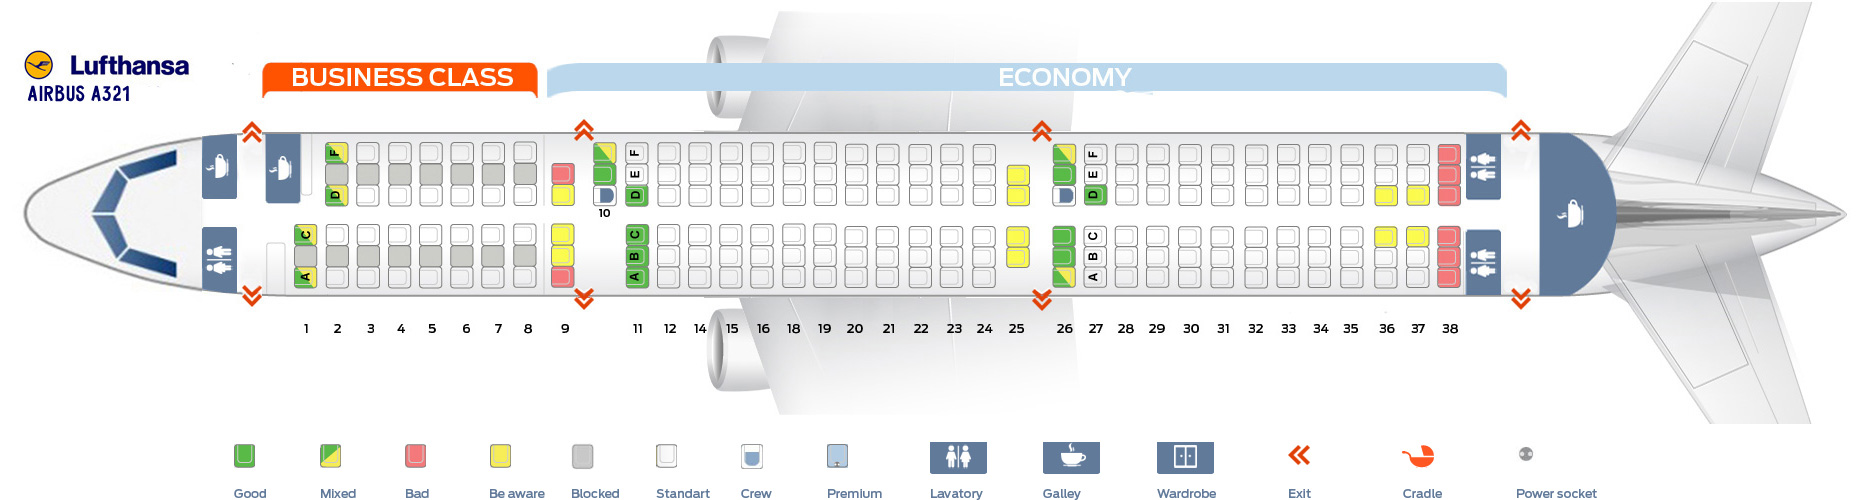 Airline Seat Maps Flights shopping and Flight information